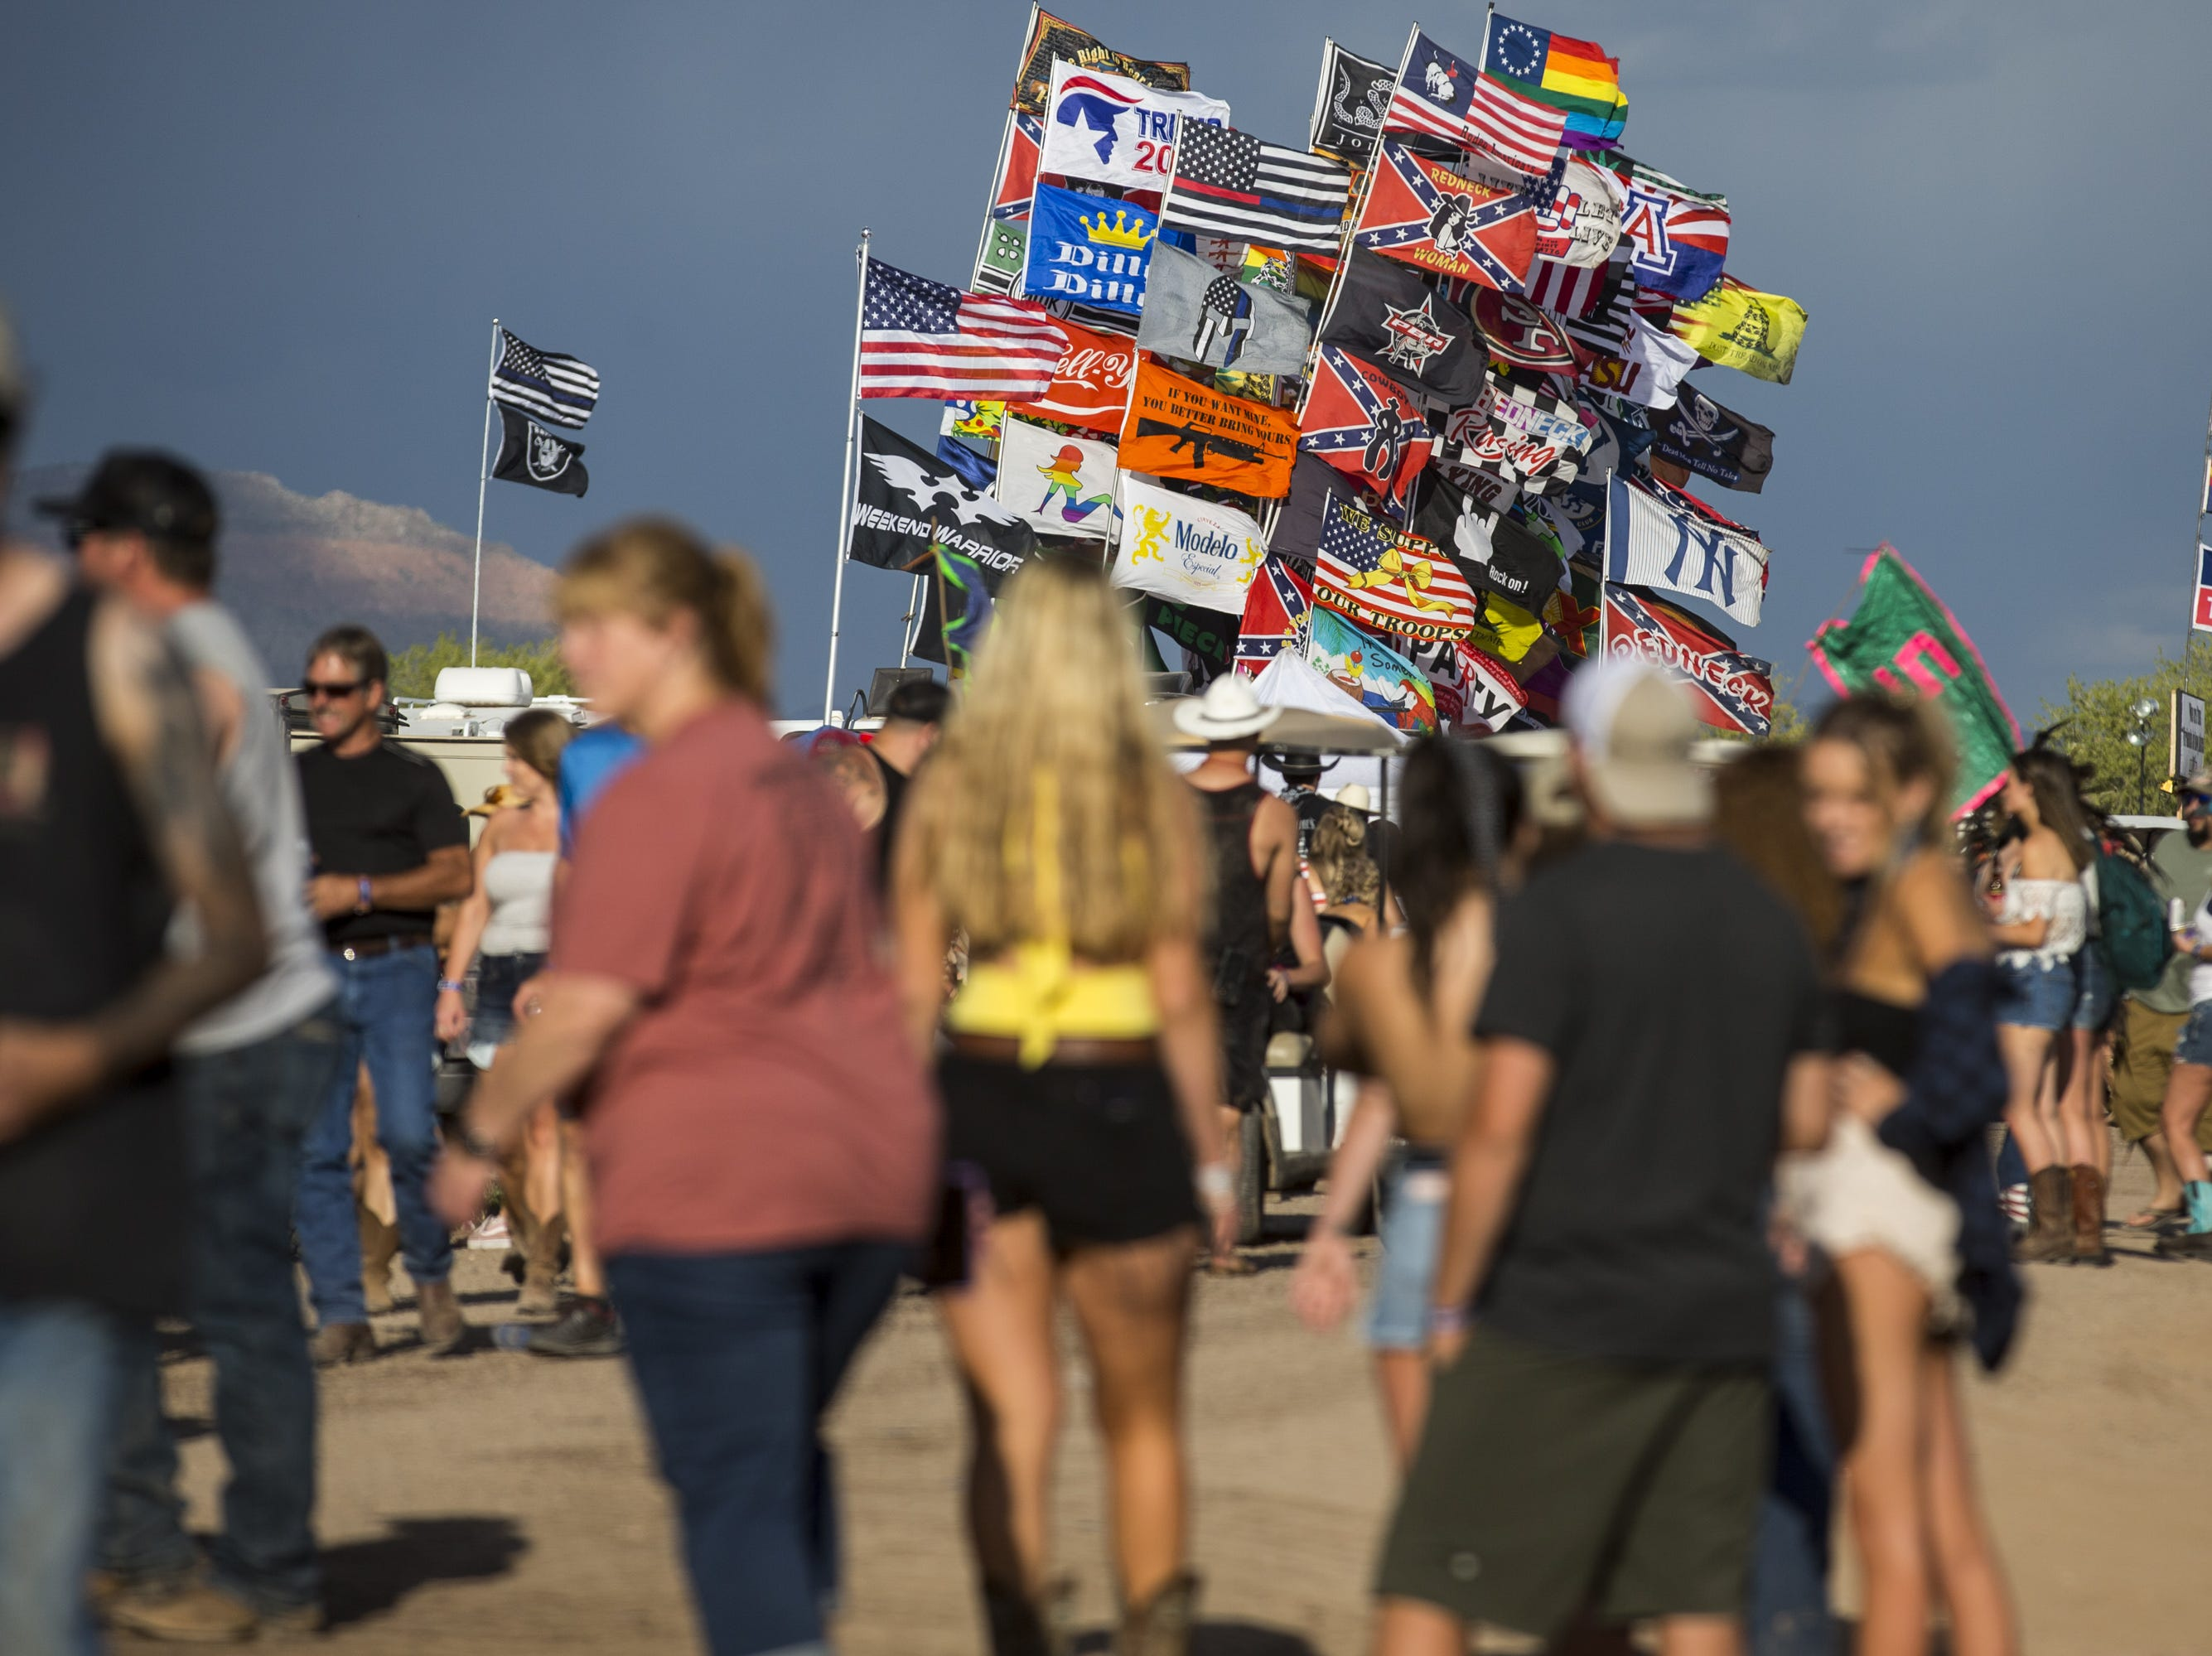 Flags are seen at the Crazy Coyote campground on Friday, April 12, 2019, during Day 2 of Country Thunder Arizona in Florence, Ariz.